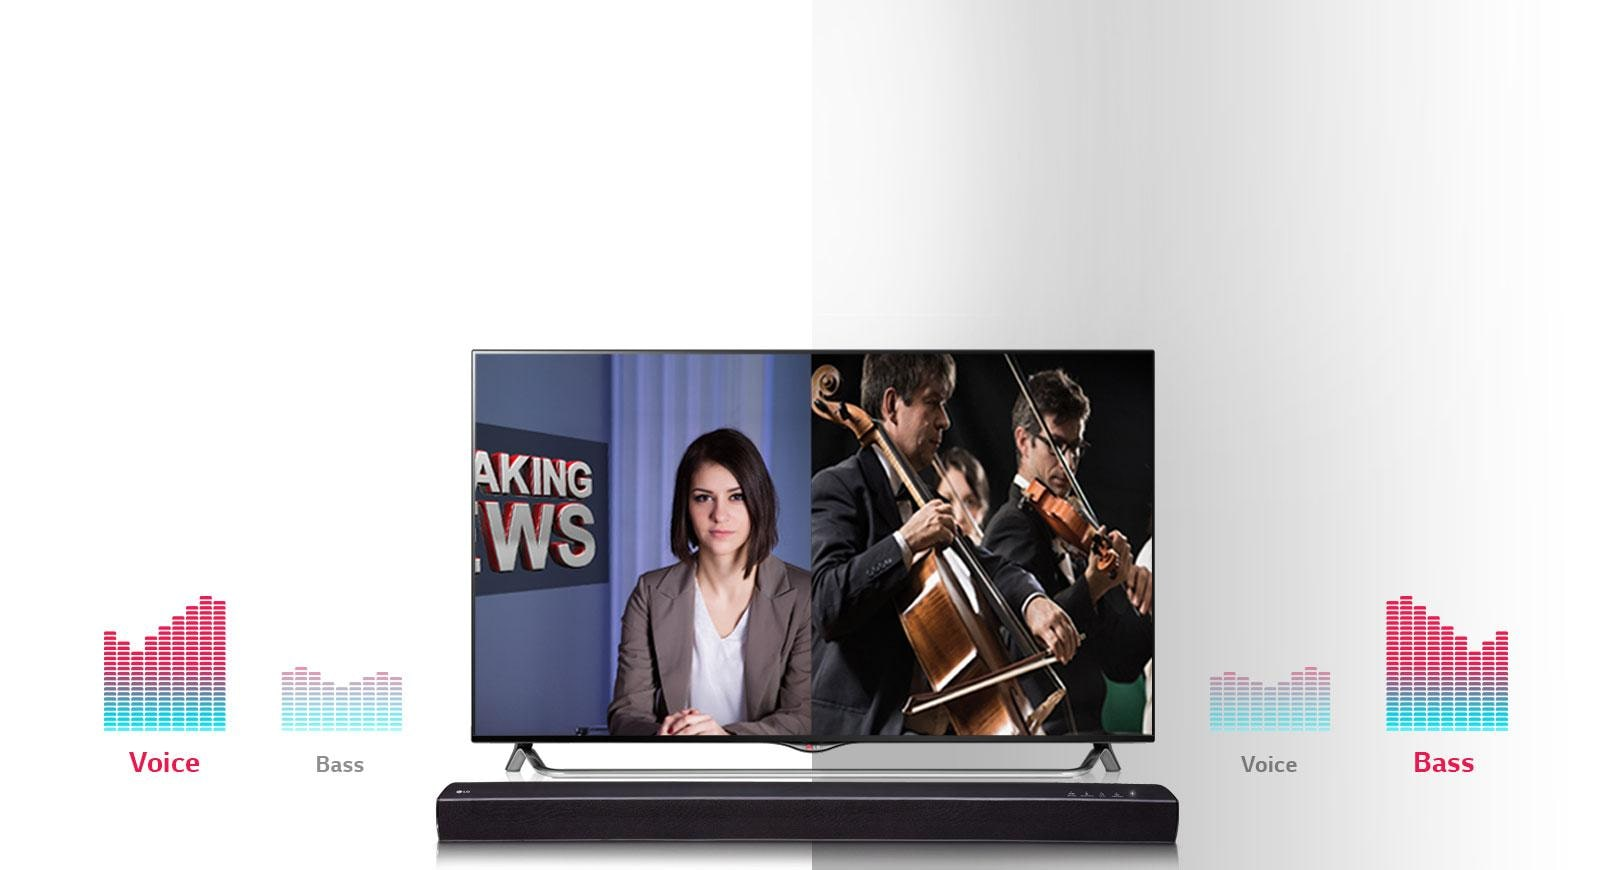 Lg Sh2 100w 21ch Sound Bar With Bluetooth Connectivity Usa Ll Find Wiring Instructions For Using The Asc On Switches Including Adaptive Control